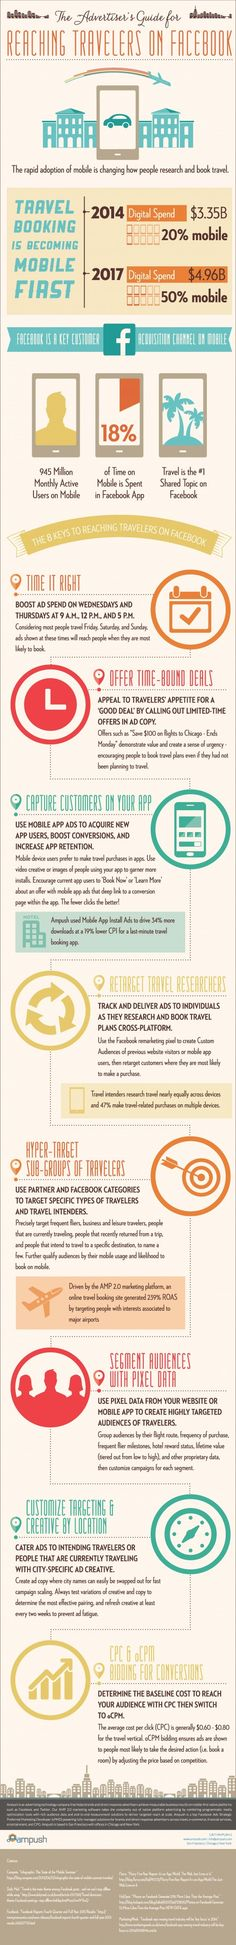 How to reach travelers on Facebook [INFOGRAPHIC]